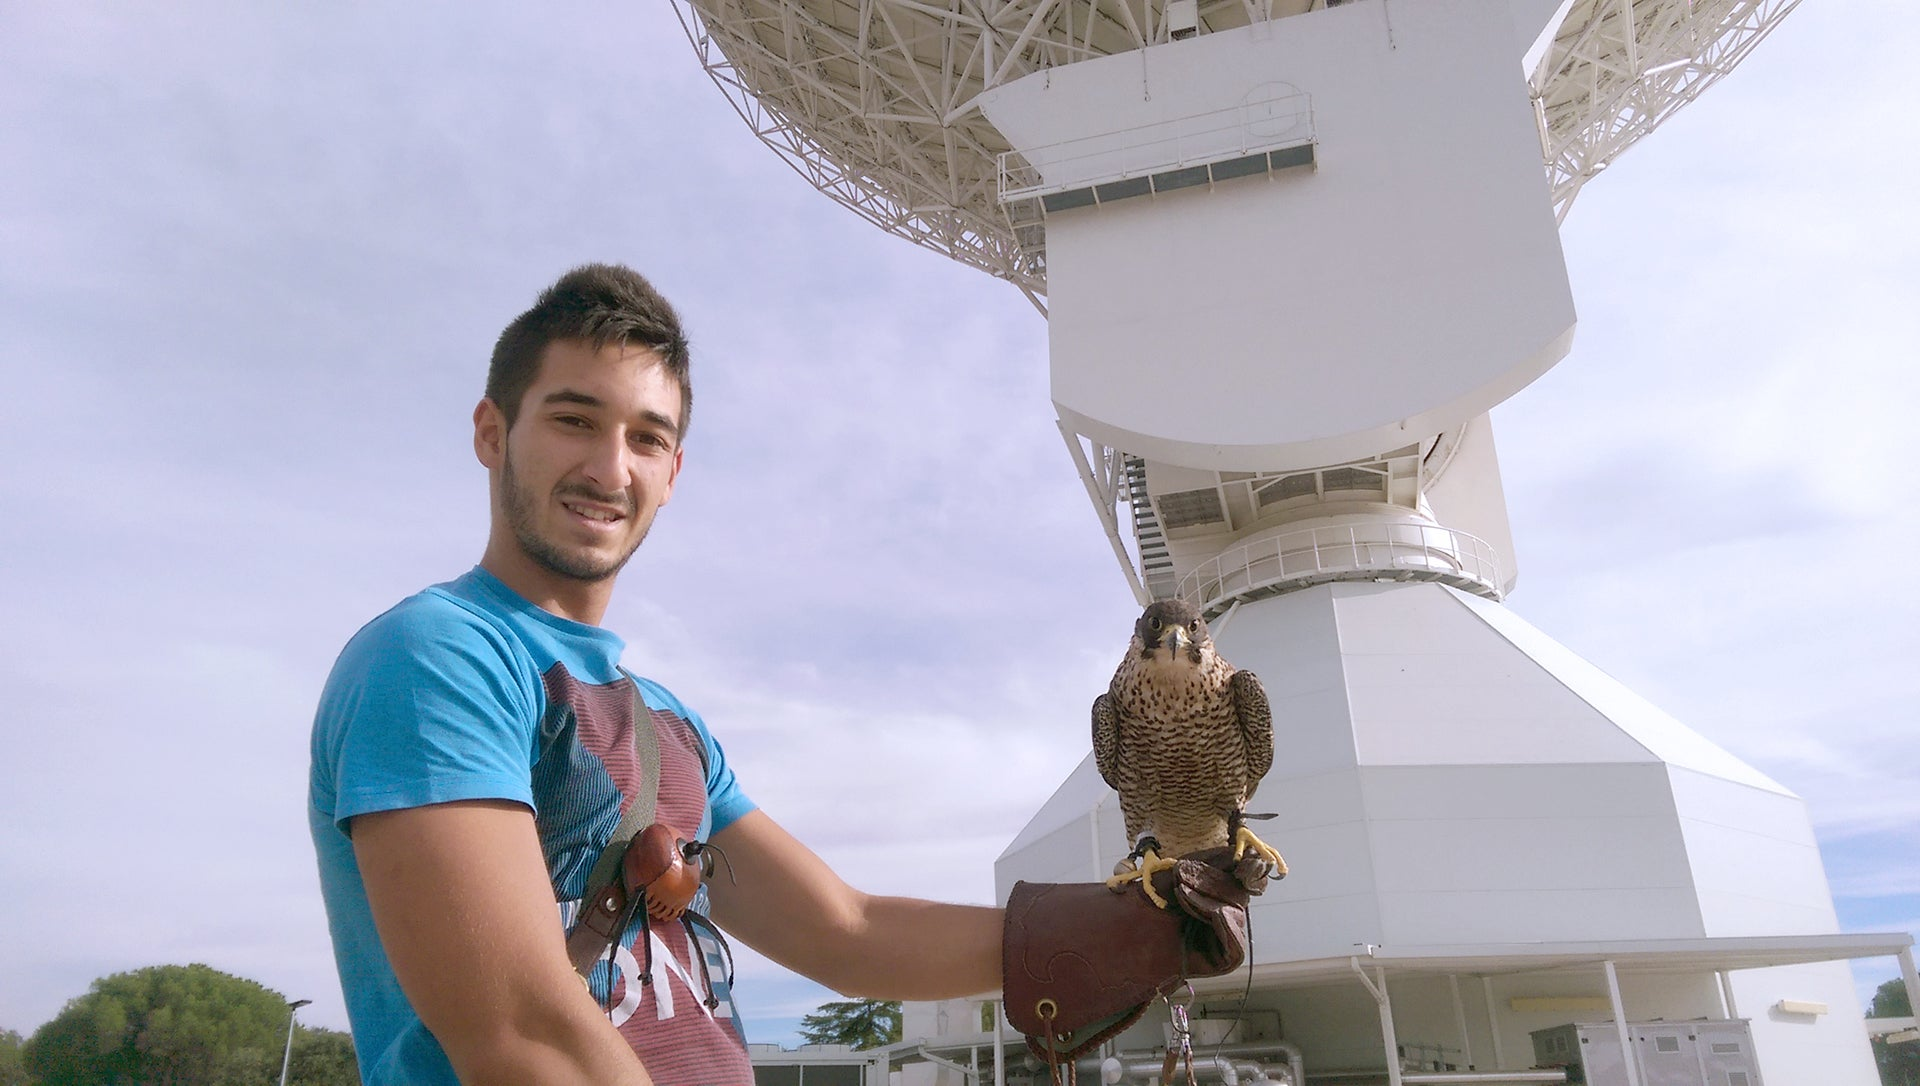 Why Does A Falcon Live At This Space Antenna?